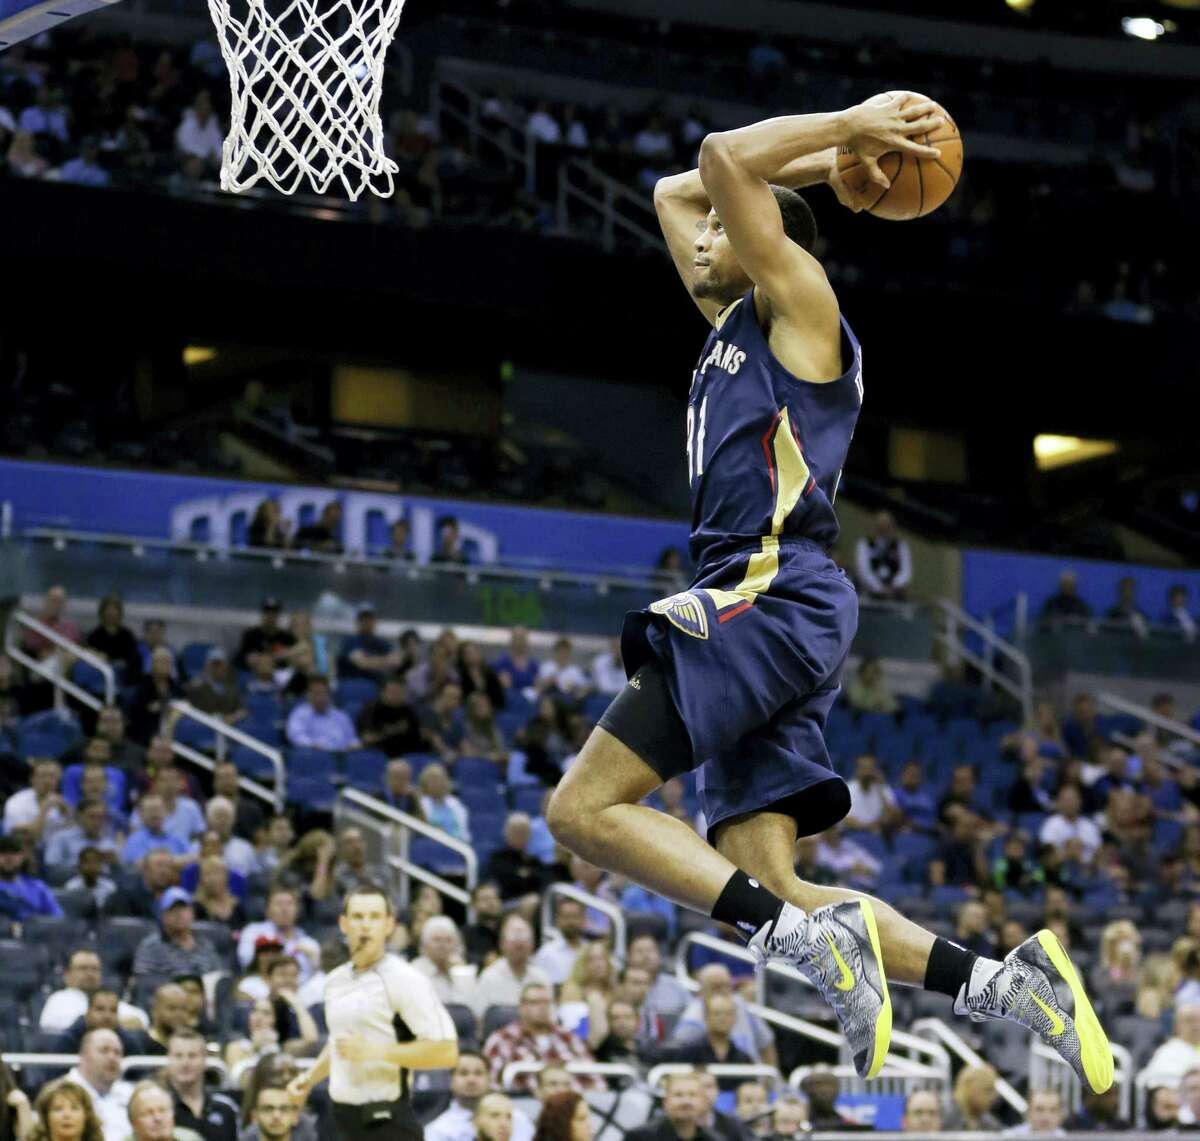 New Orleans Pelicans' Bryce Dejean-Jones was fatally shot after breaking down the door to a Dallas apartment on Saturday.